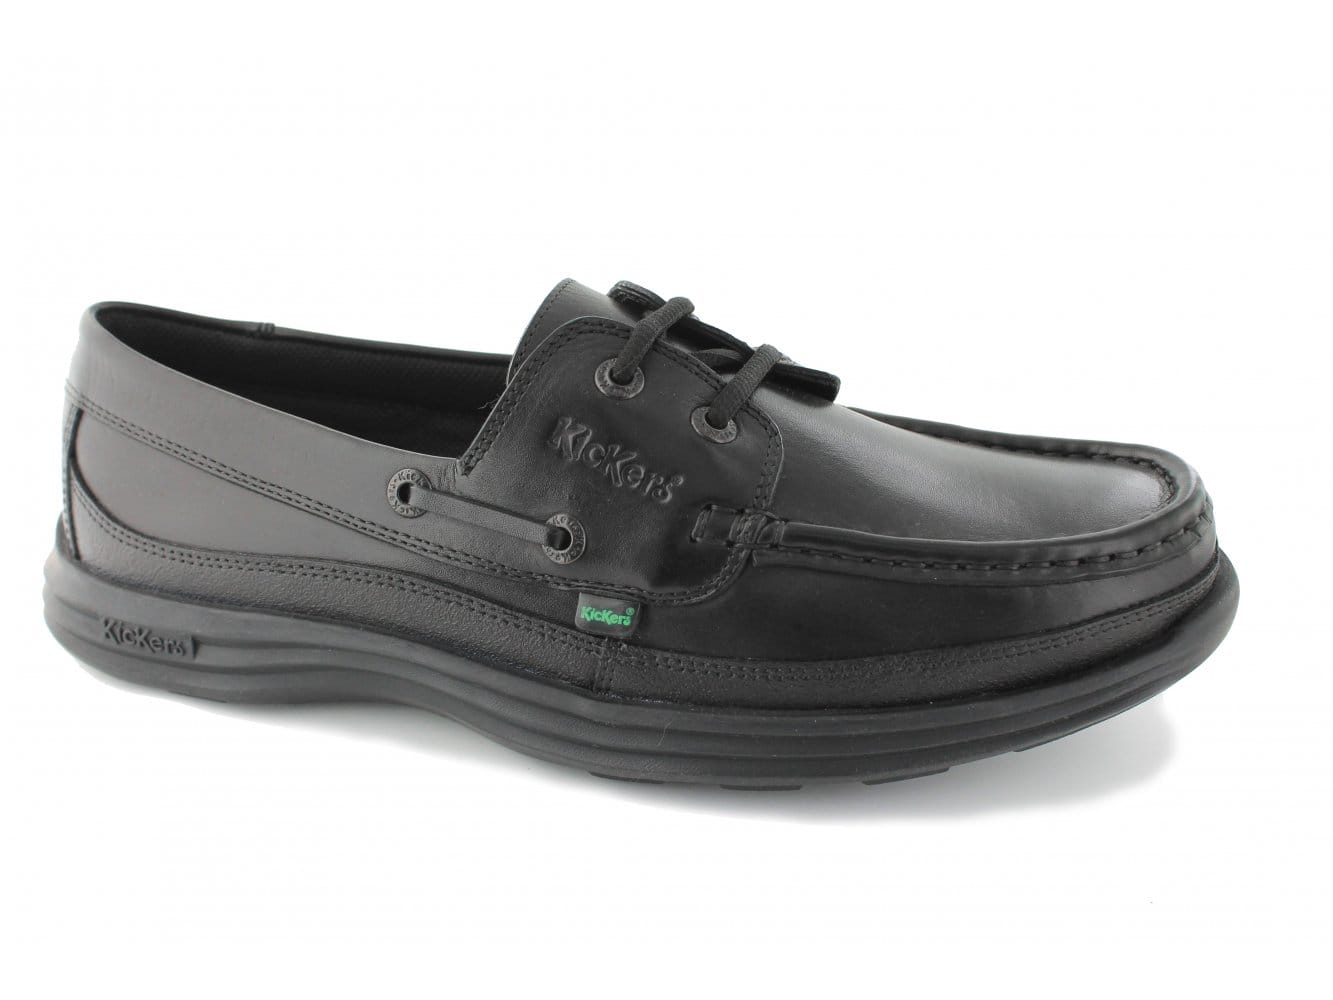 d38e7ed27eff ... Kickers REASAN BOAT Mens Leather Deck Shoes Black Shuperb